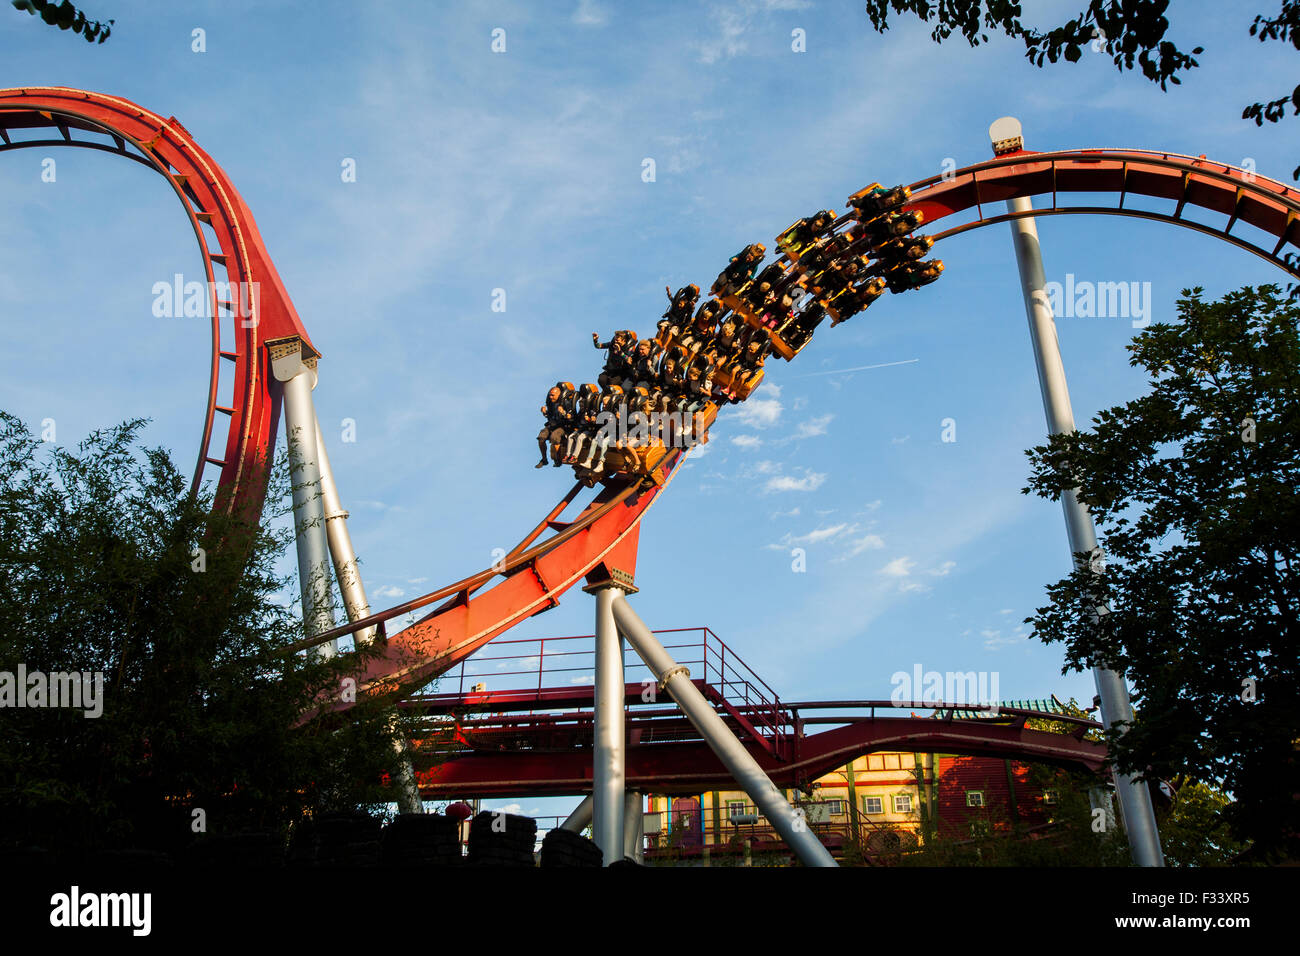 Tivoli Without Rides The Demon Rollercoaster Ride Tivoli Gardens Copenhagen Stock